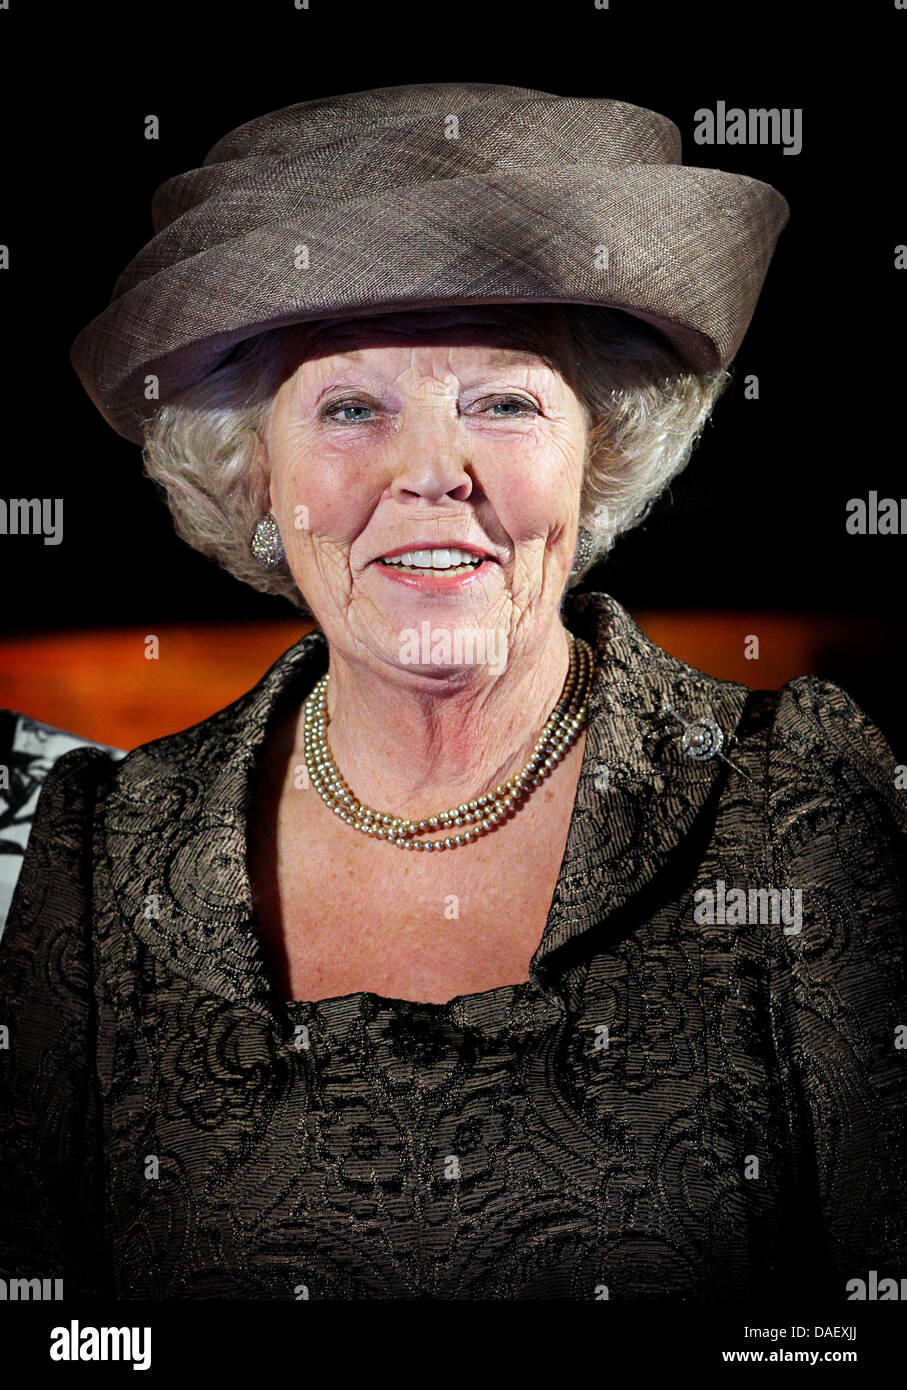 Queen Beatrix of The Netherlands attends the jubilee celebration of the Rheuma Foundation in the Hall of Knights - Stock Image